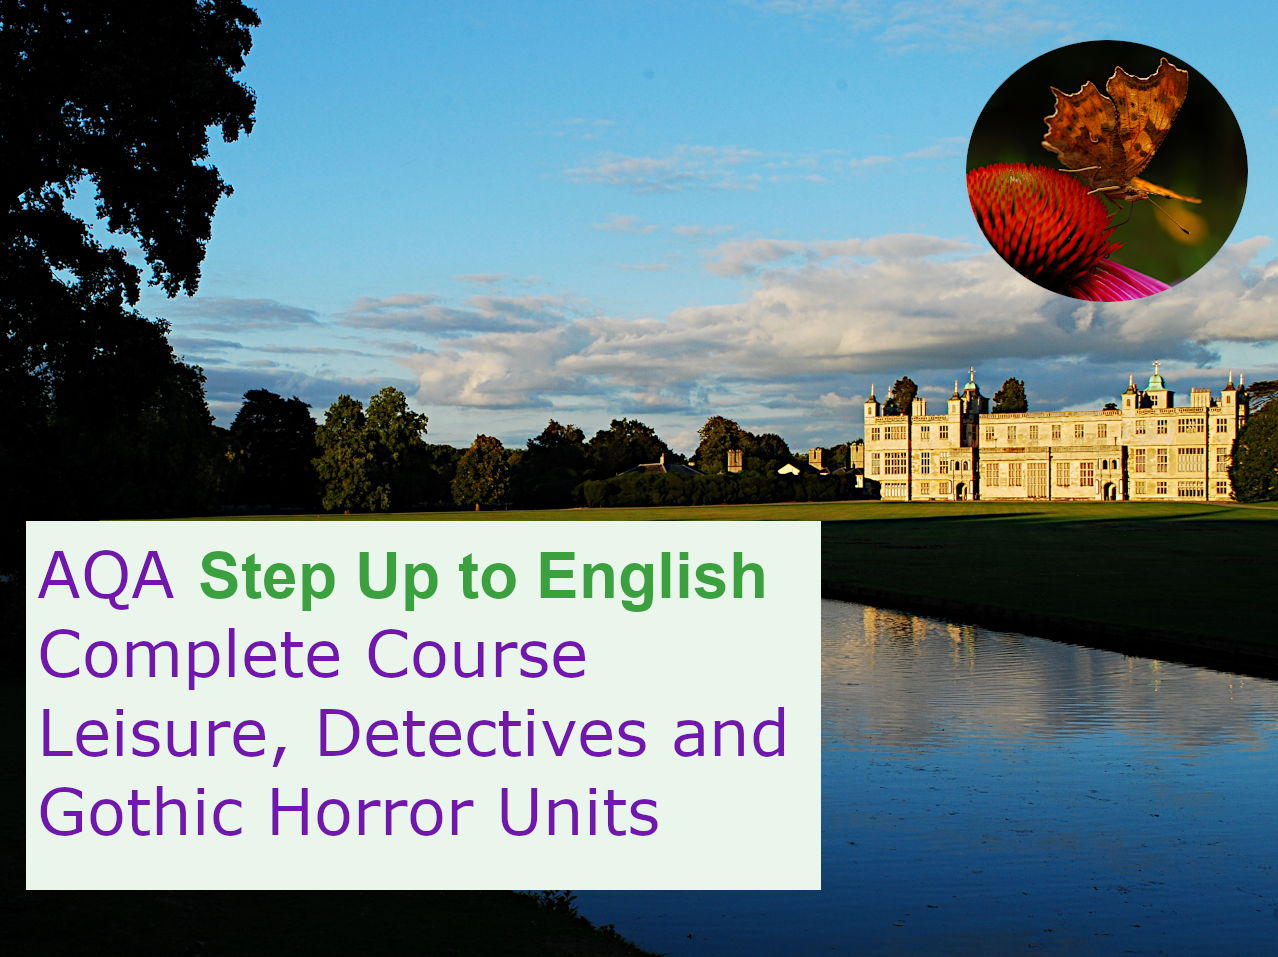 AQA Step Up to English: Complete Course  (Leisure, Detectives and Horror Units)